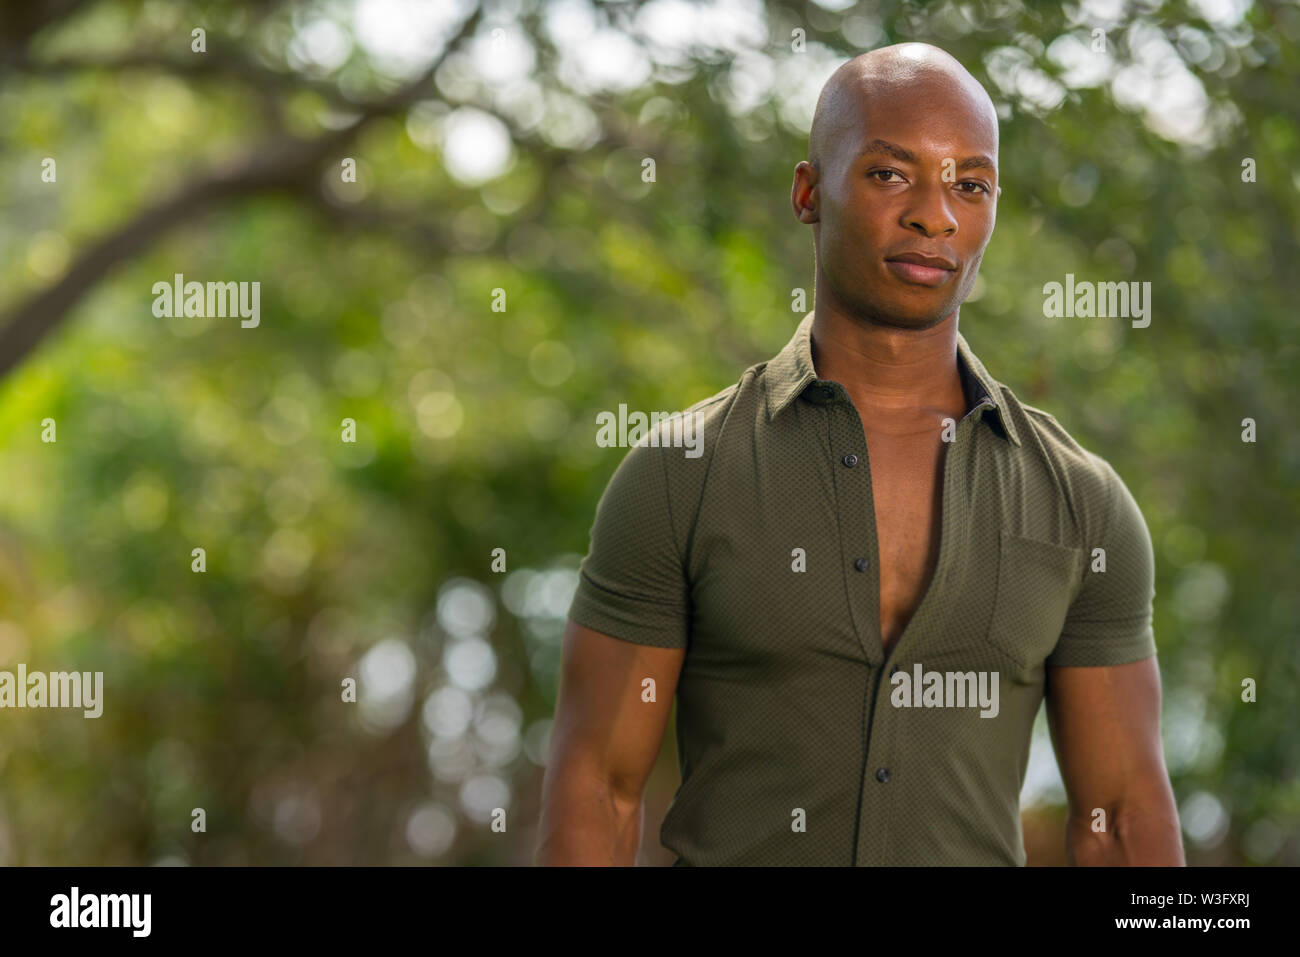 Portrait of a young macho African American male model posing outdoors in nature setting - Stock Image